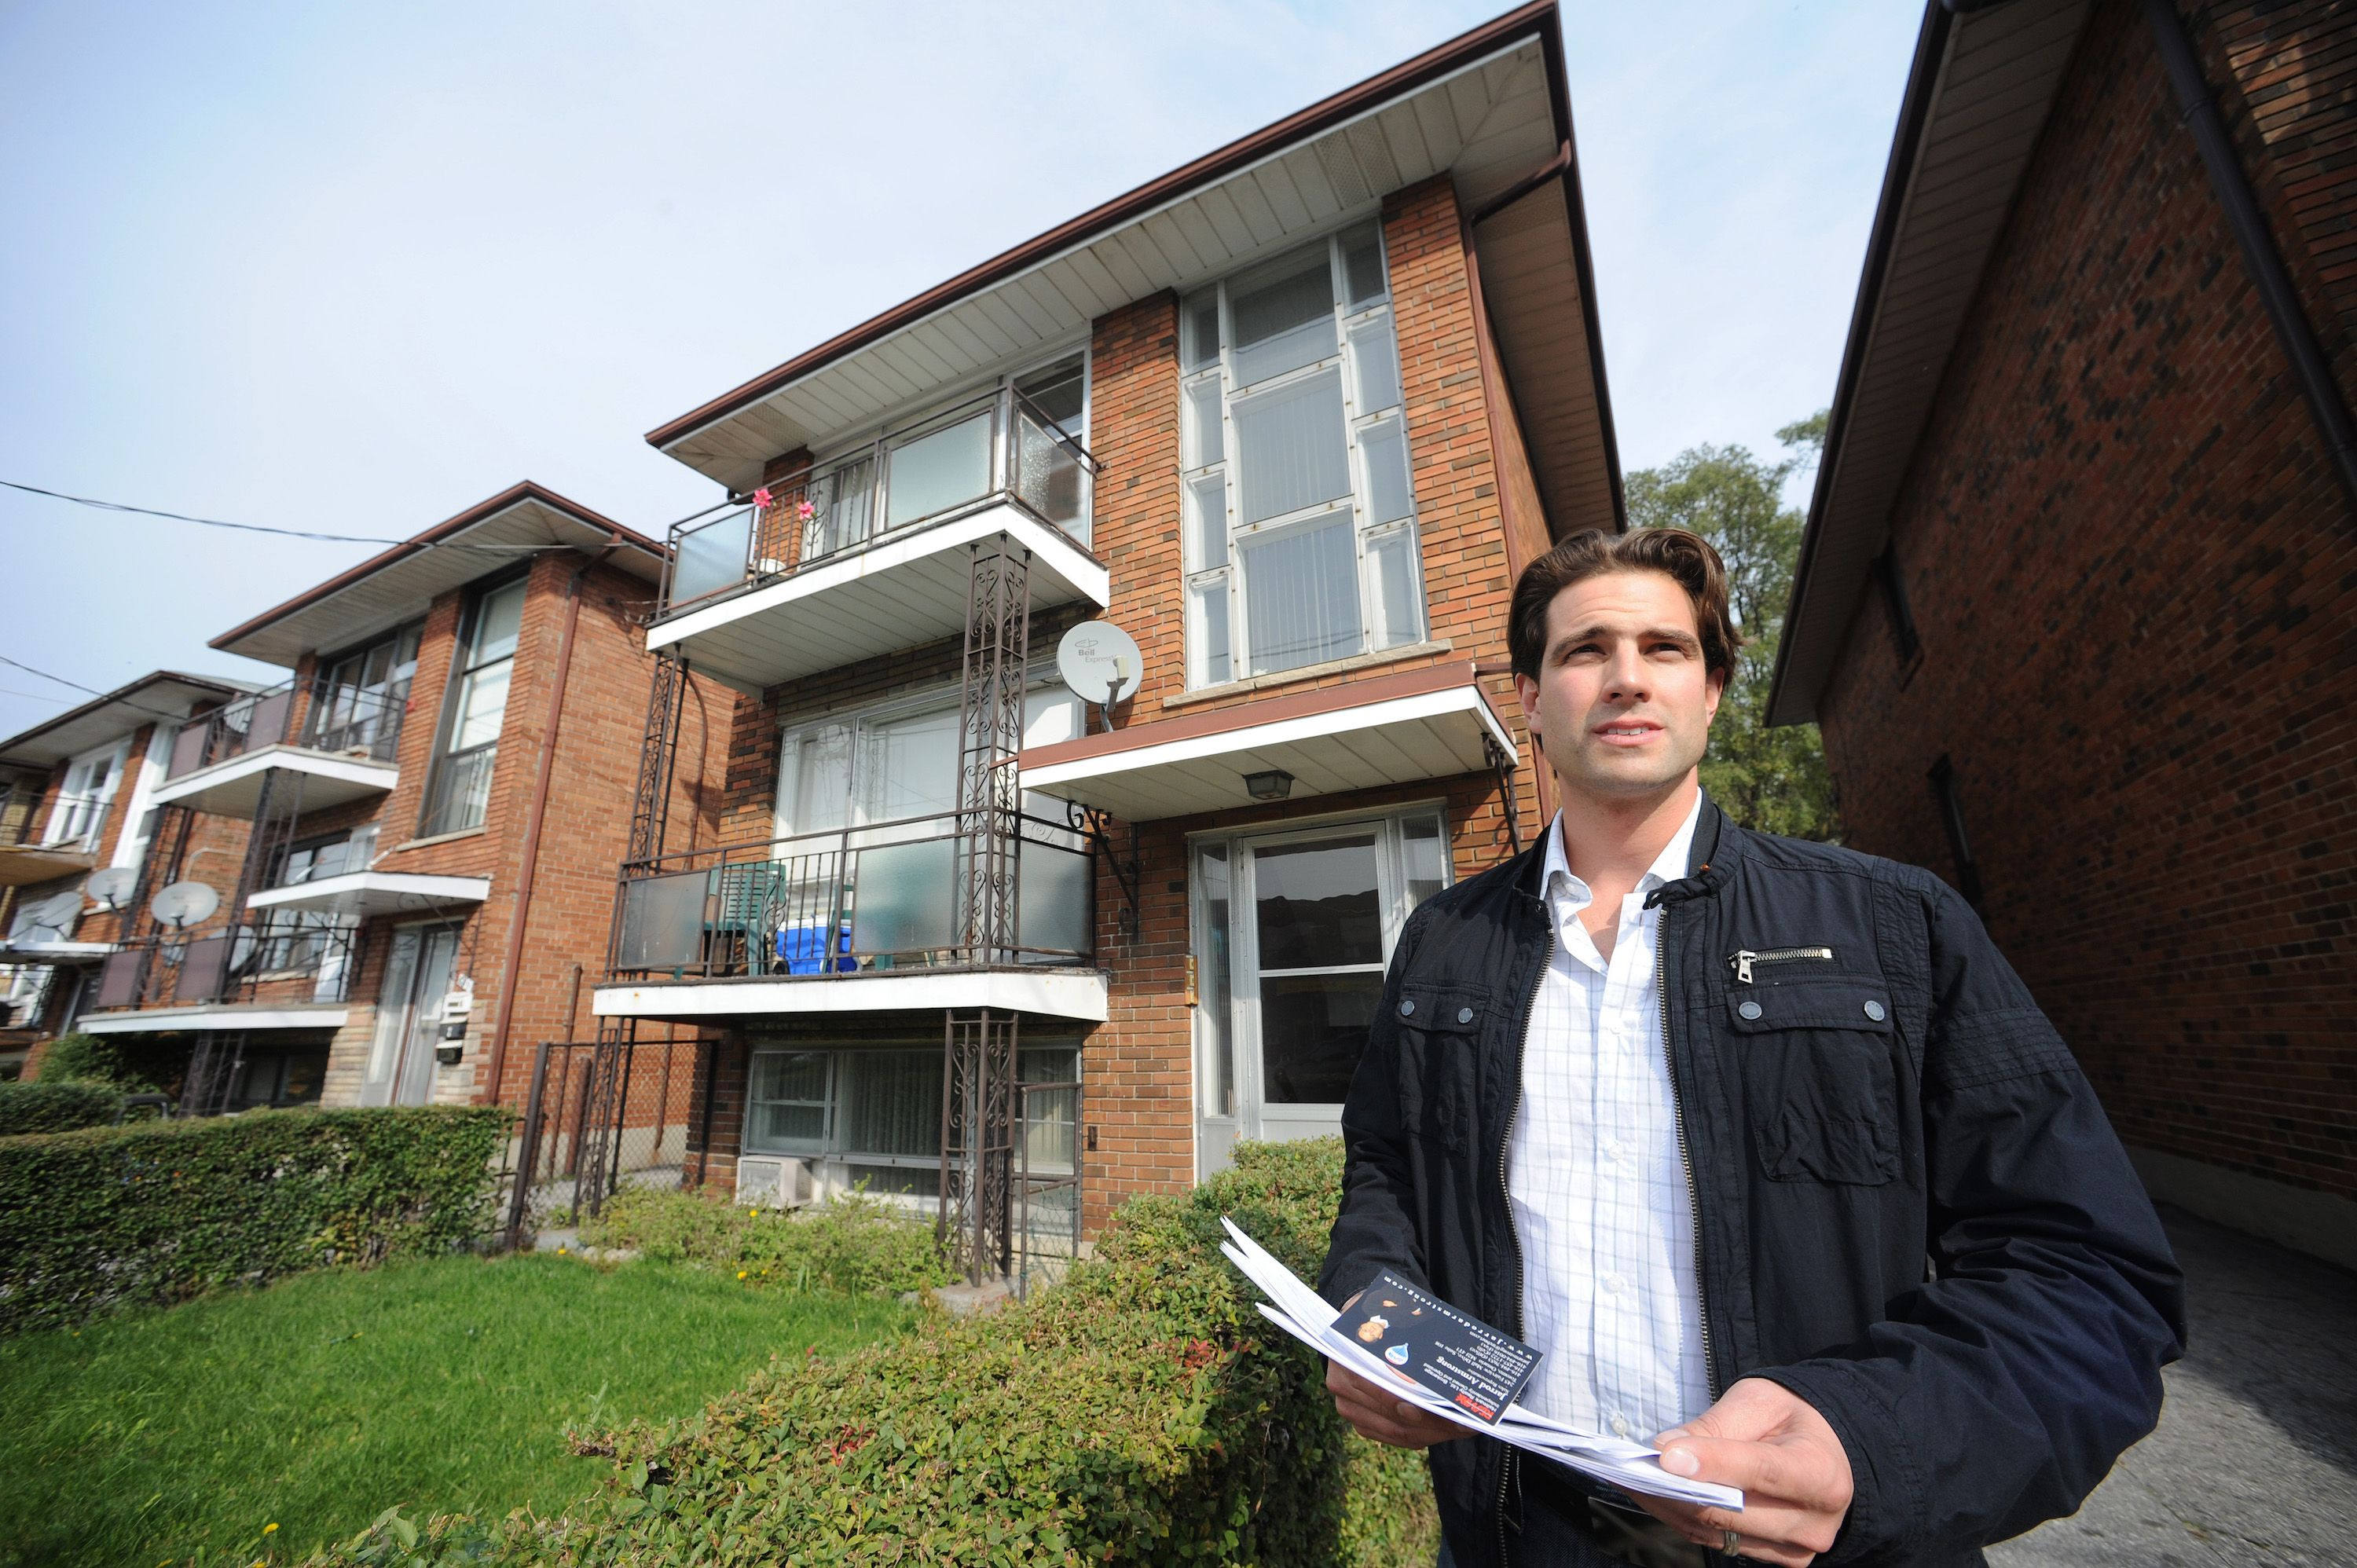 Hgtv Star Scott Mcgillivray From Income Property And His Best Tips For Ing A House